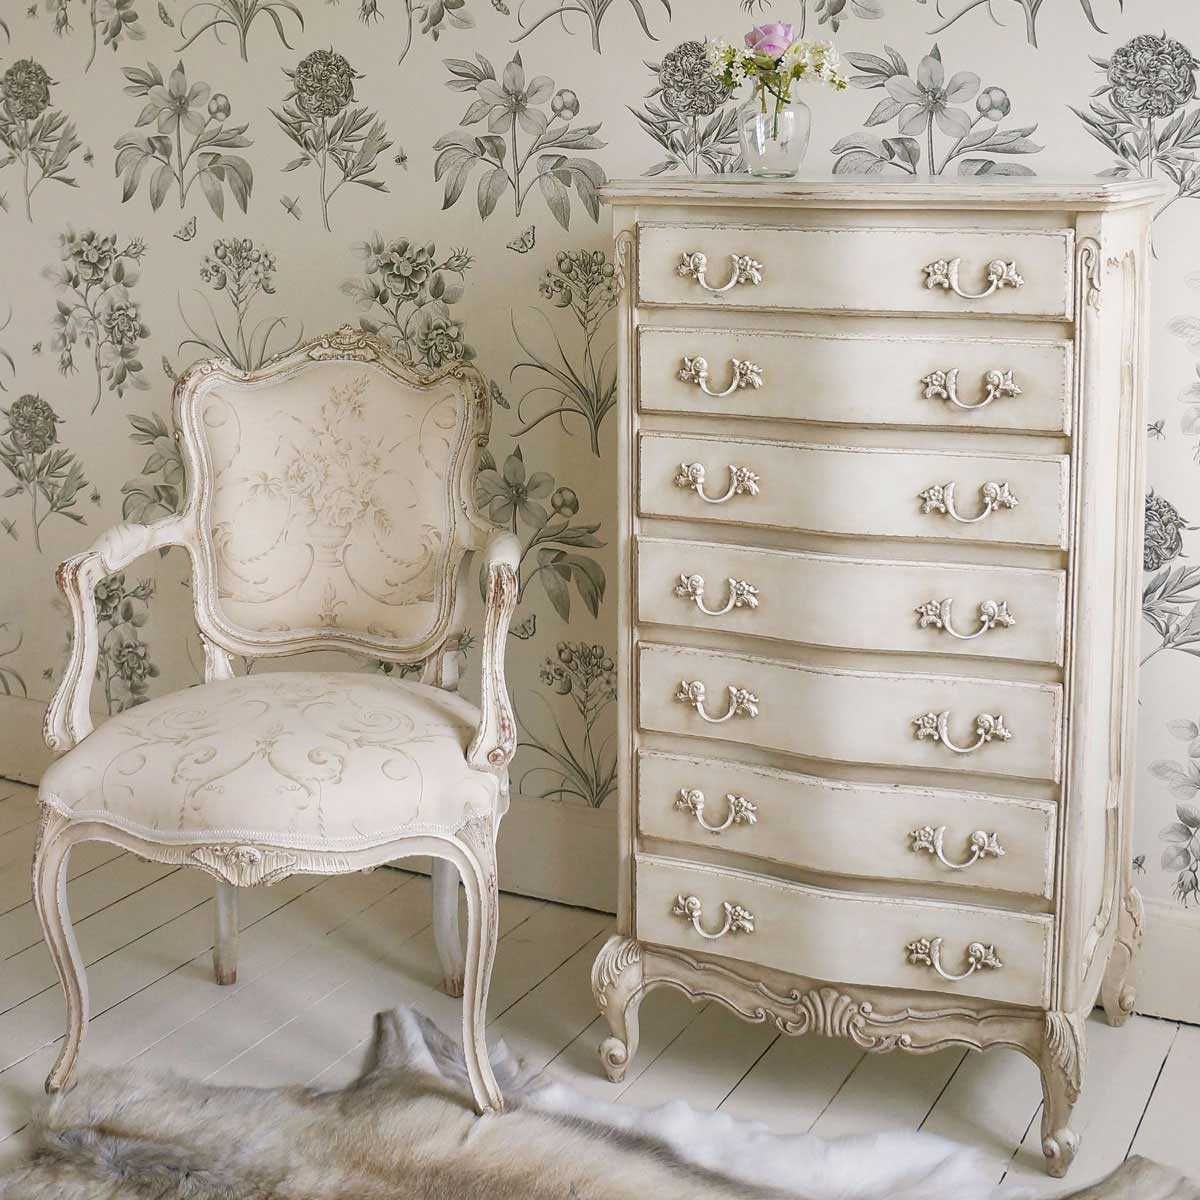 Distressed Bedroom Sets Bedroom Cupboards With Mirror Sliding Doors Bedroom Colour As Per Vastu Shabby Chic Bedroom Sets: Delphine Distressed Shabby Chic White Tallboy Chest